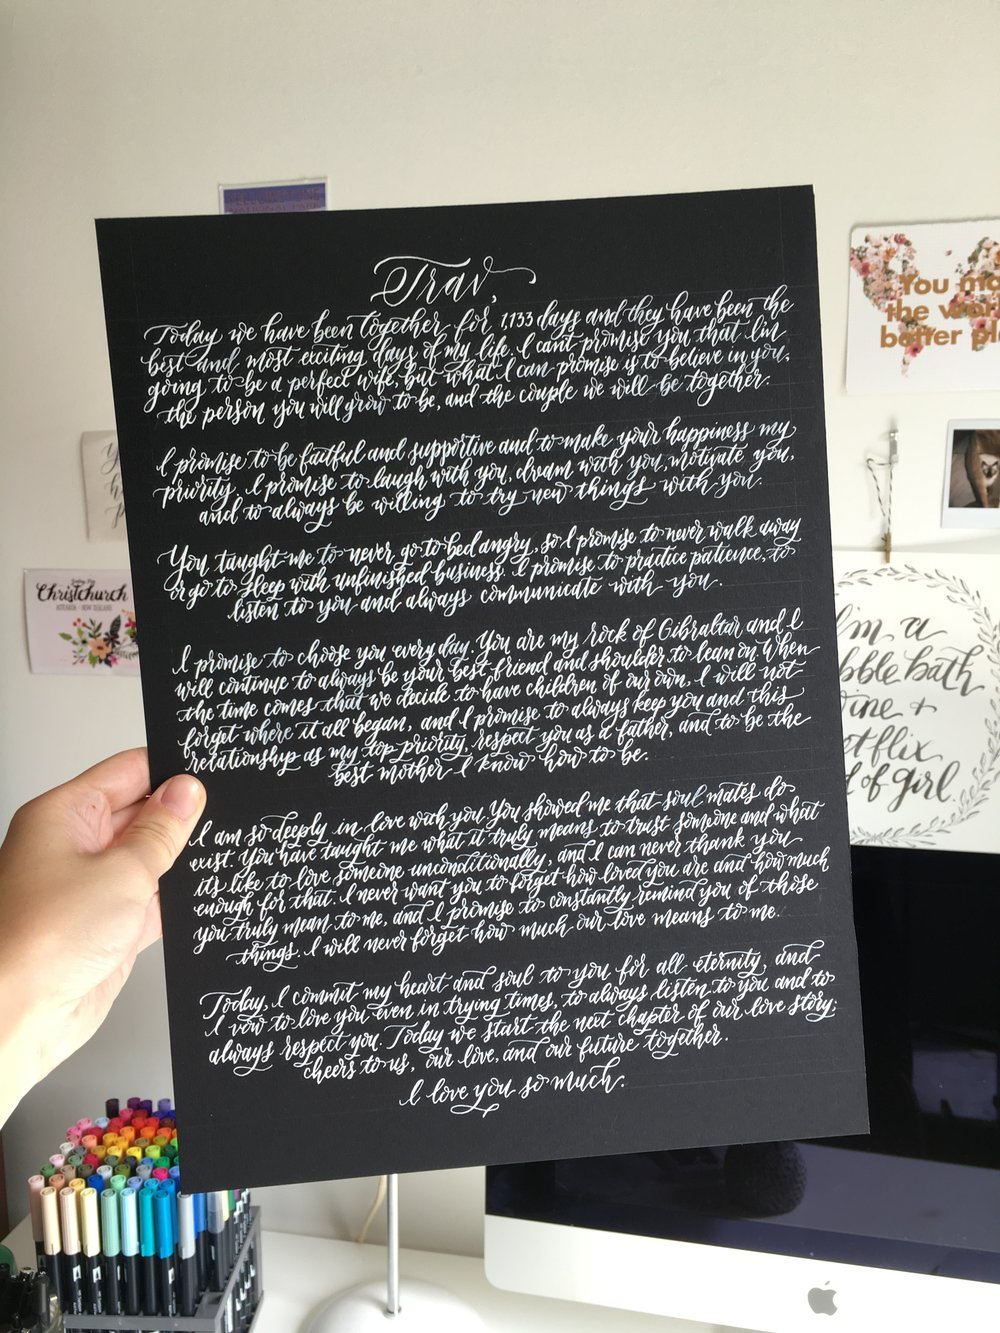 vows written in calligraphy as a keepsake wedding gift